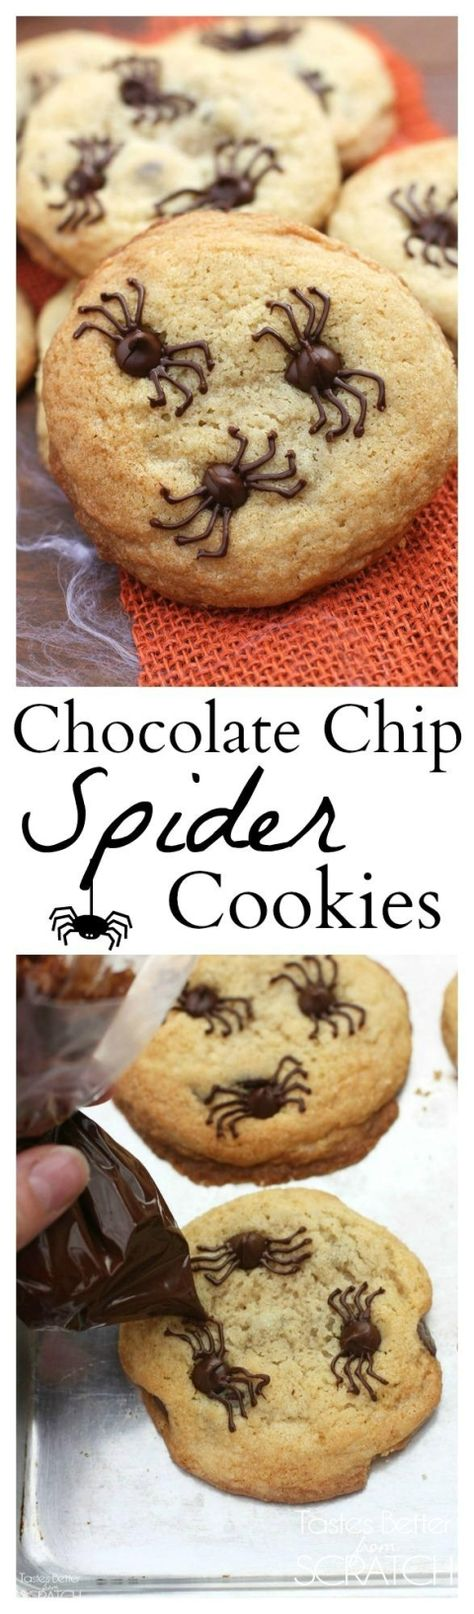 Chocolate Chip Spider Cookies make the perfect fun and easy Halloween treat!